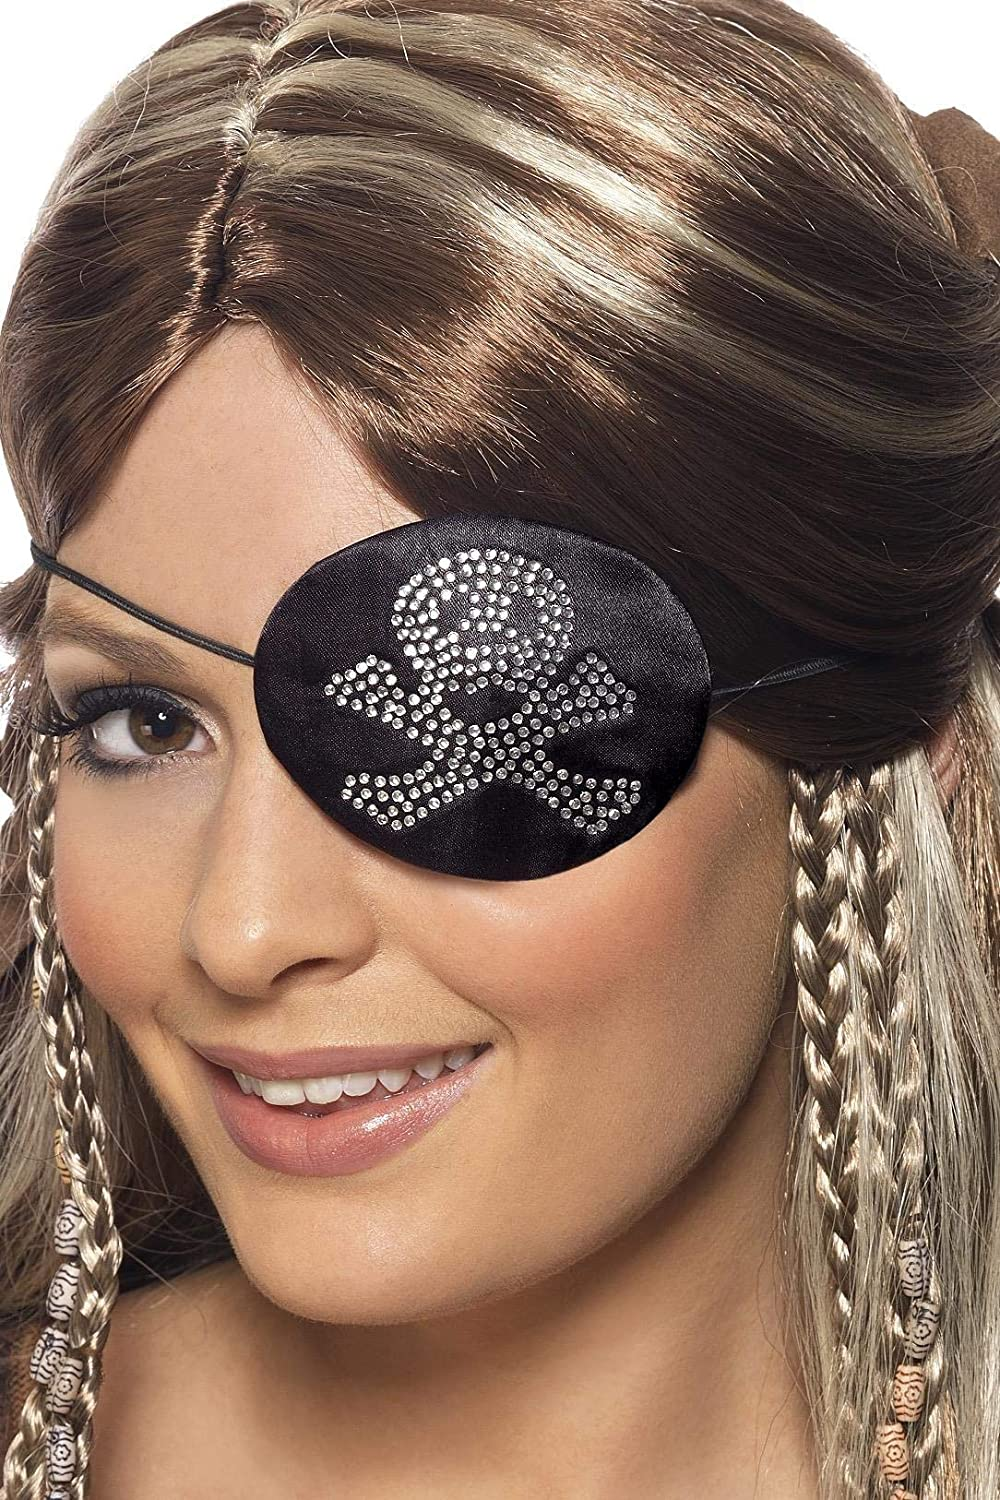 Gold and Red Accessory Pirate Eye Mask Fancy Dress Black